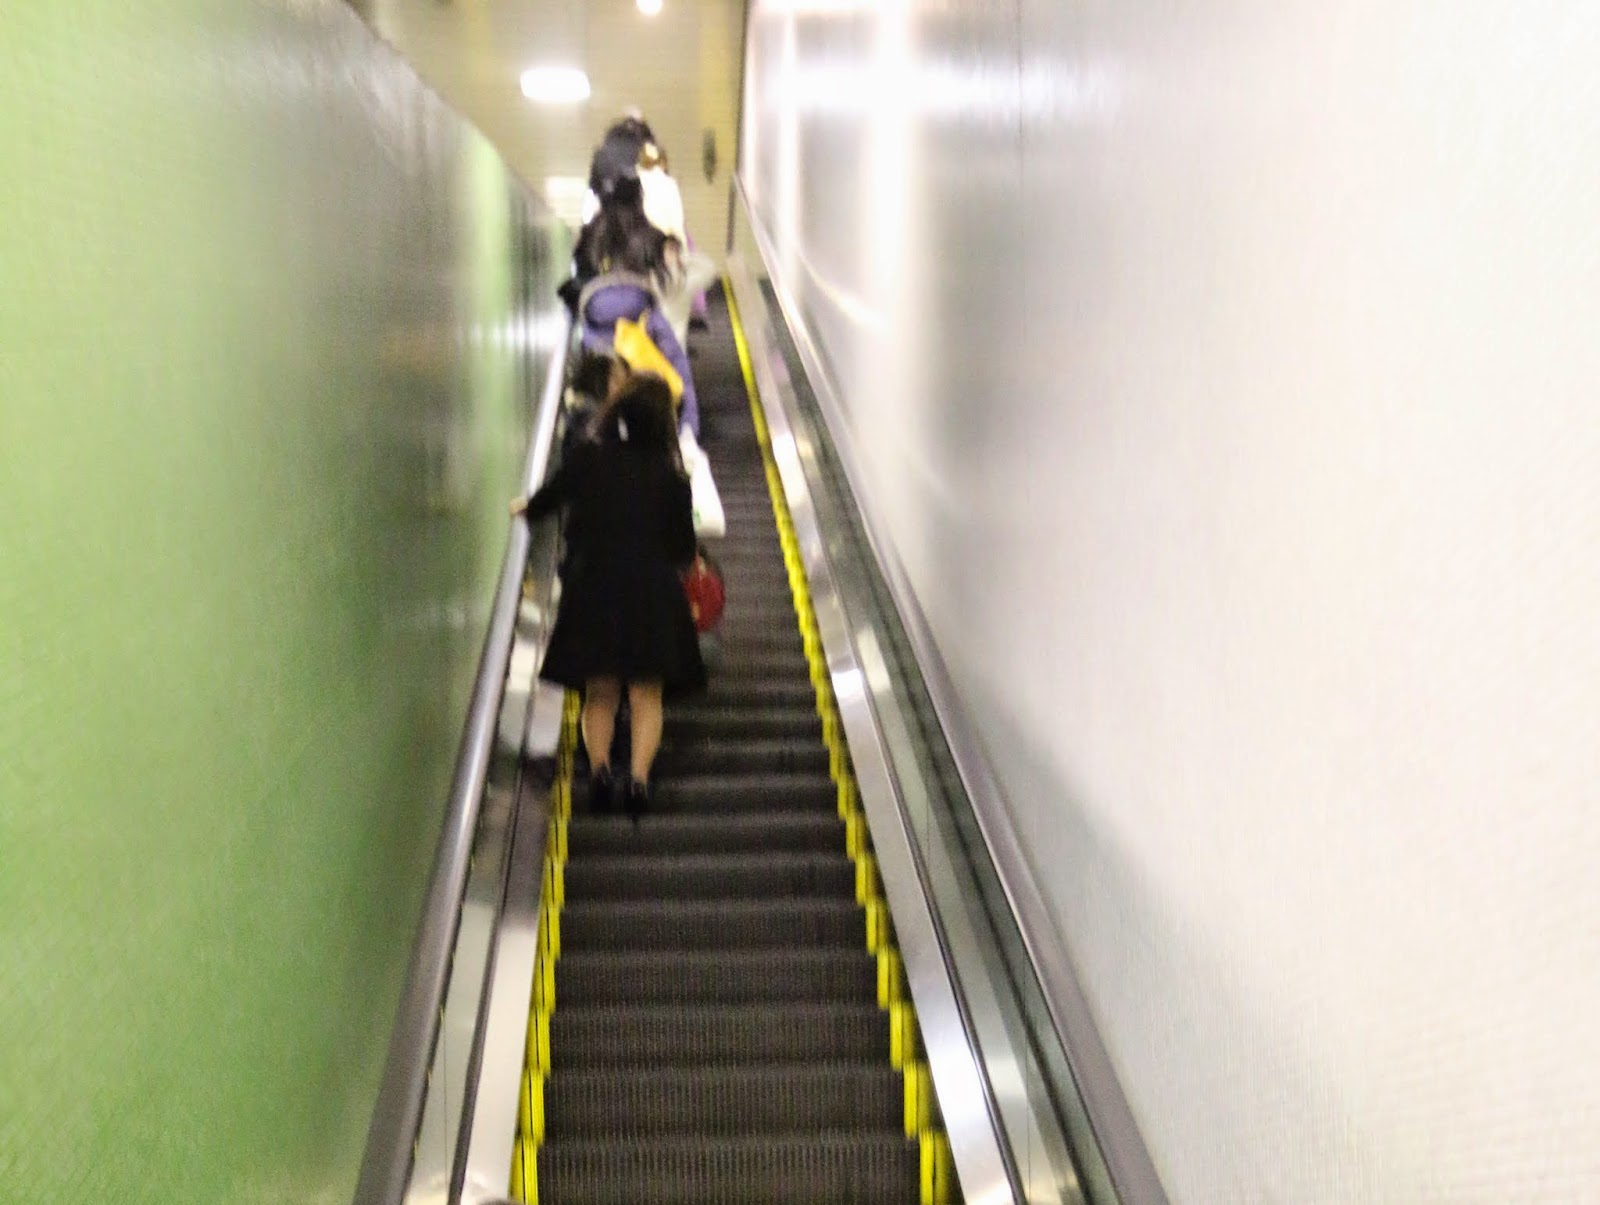 Japanese Escalator Etiquette is by standing on the left side in Tokyo while standing on the right side in Osaka in order to allow others passing by